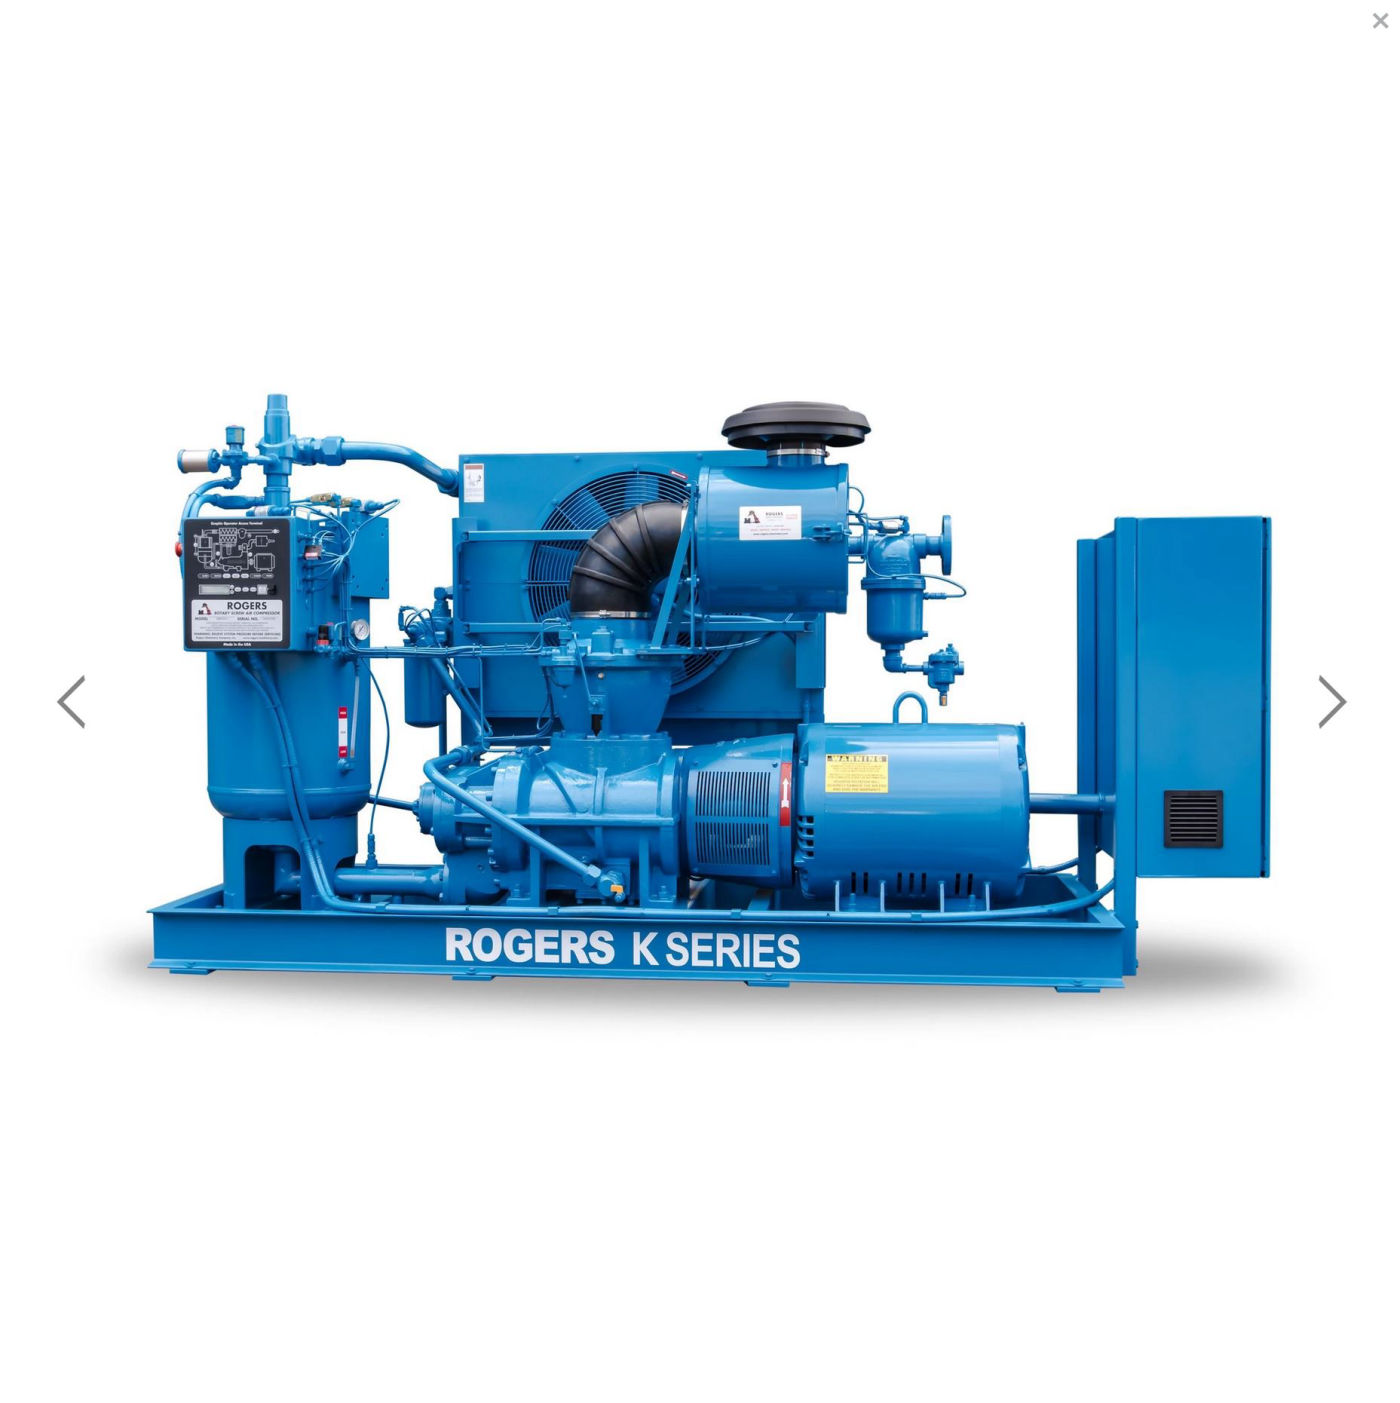 Picture of Roger Machinery K series Rotary Screw Air Compressor